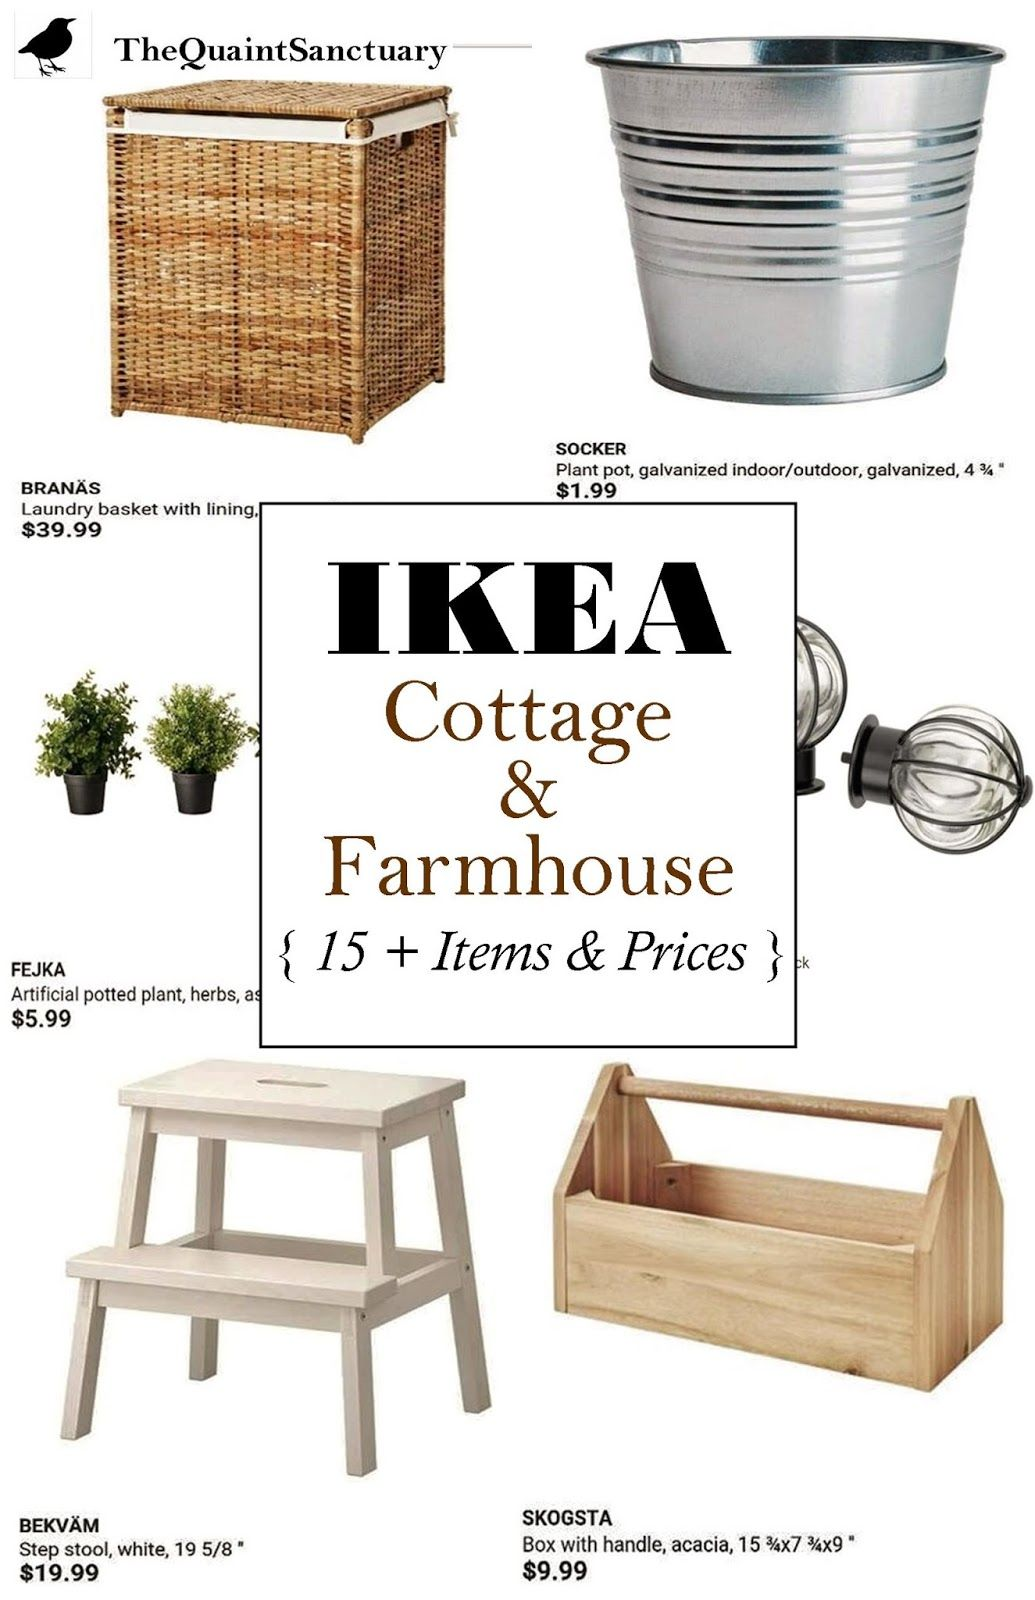 Remarkable The Quaint Sanctuary Ikea Guide To Farmhouse Cottage Decor On Largest Home Design Picture Inspirations Pitcheantrous